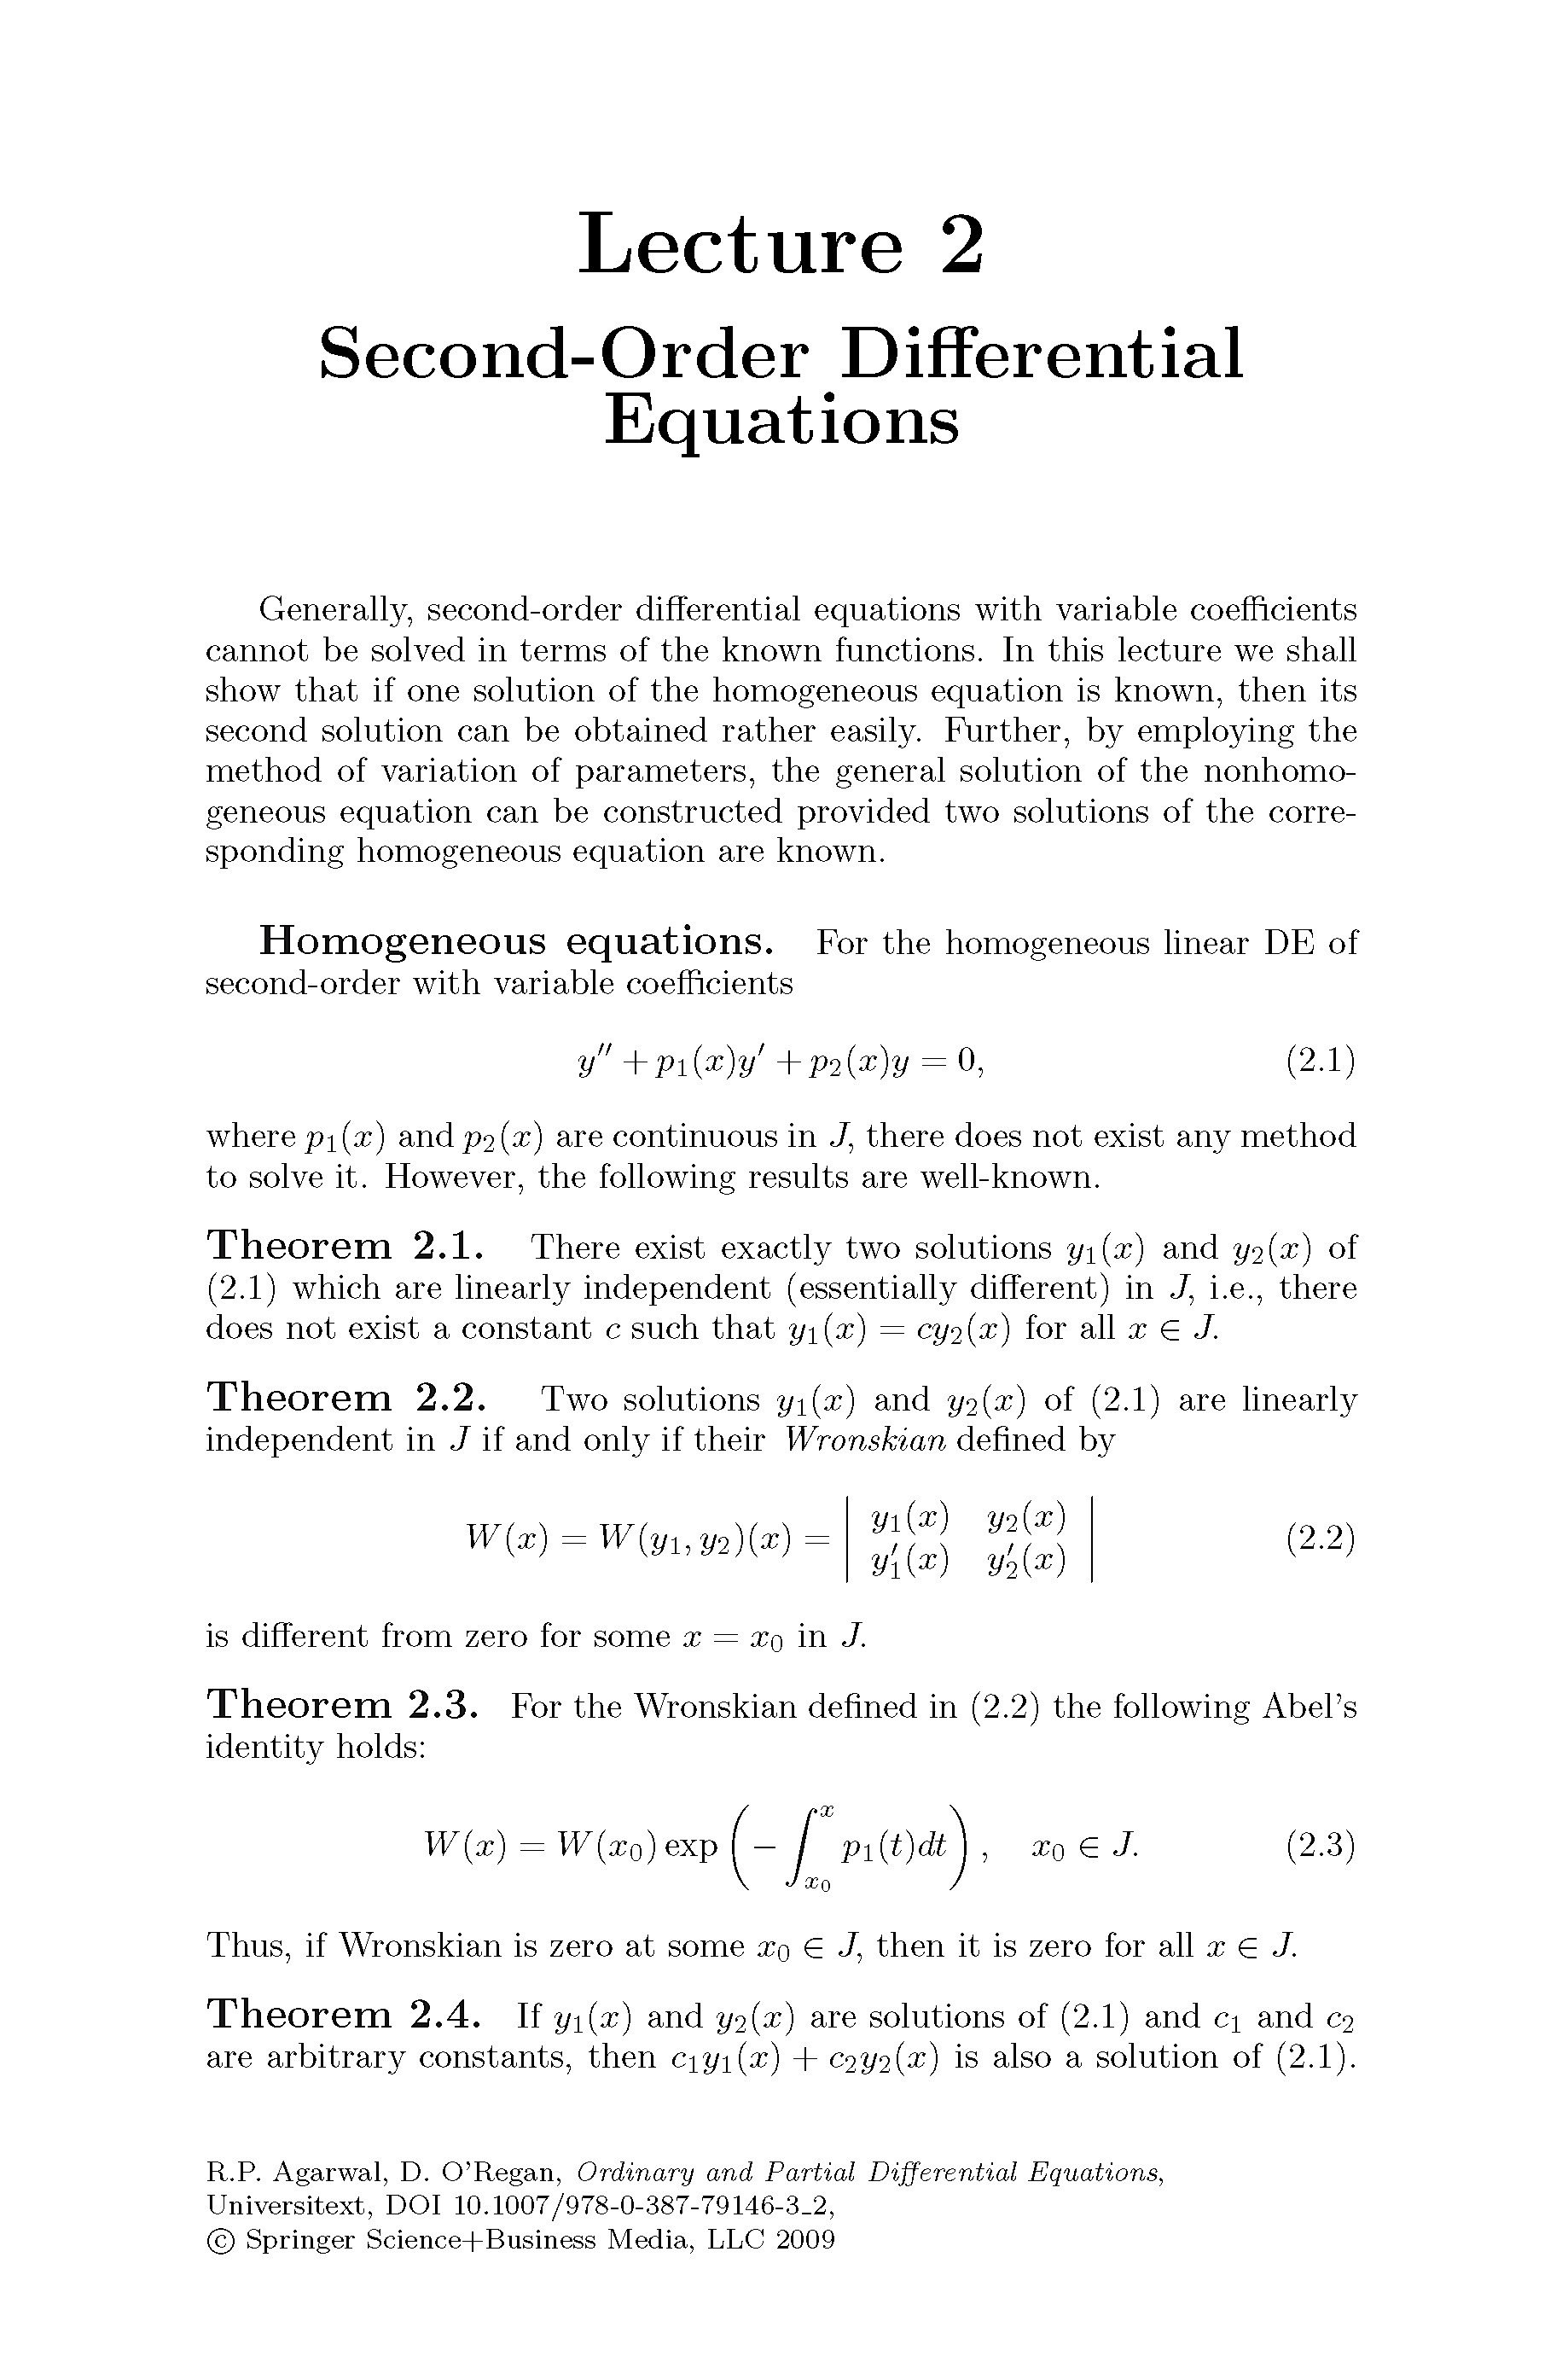 Ordinary and Partial Differential Equations Buch